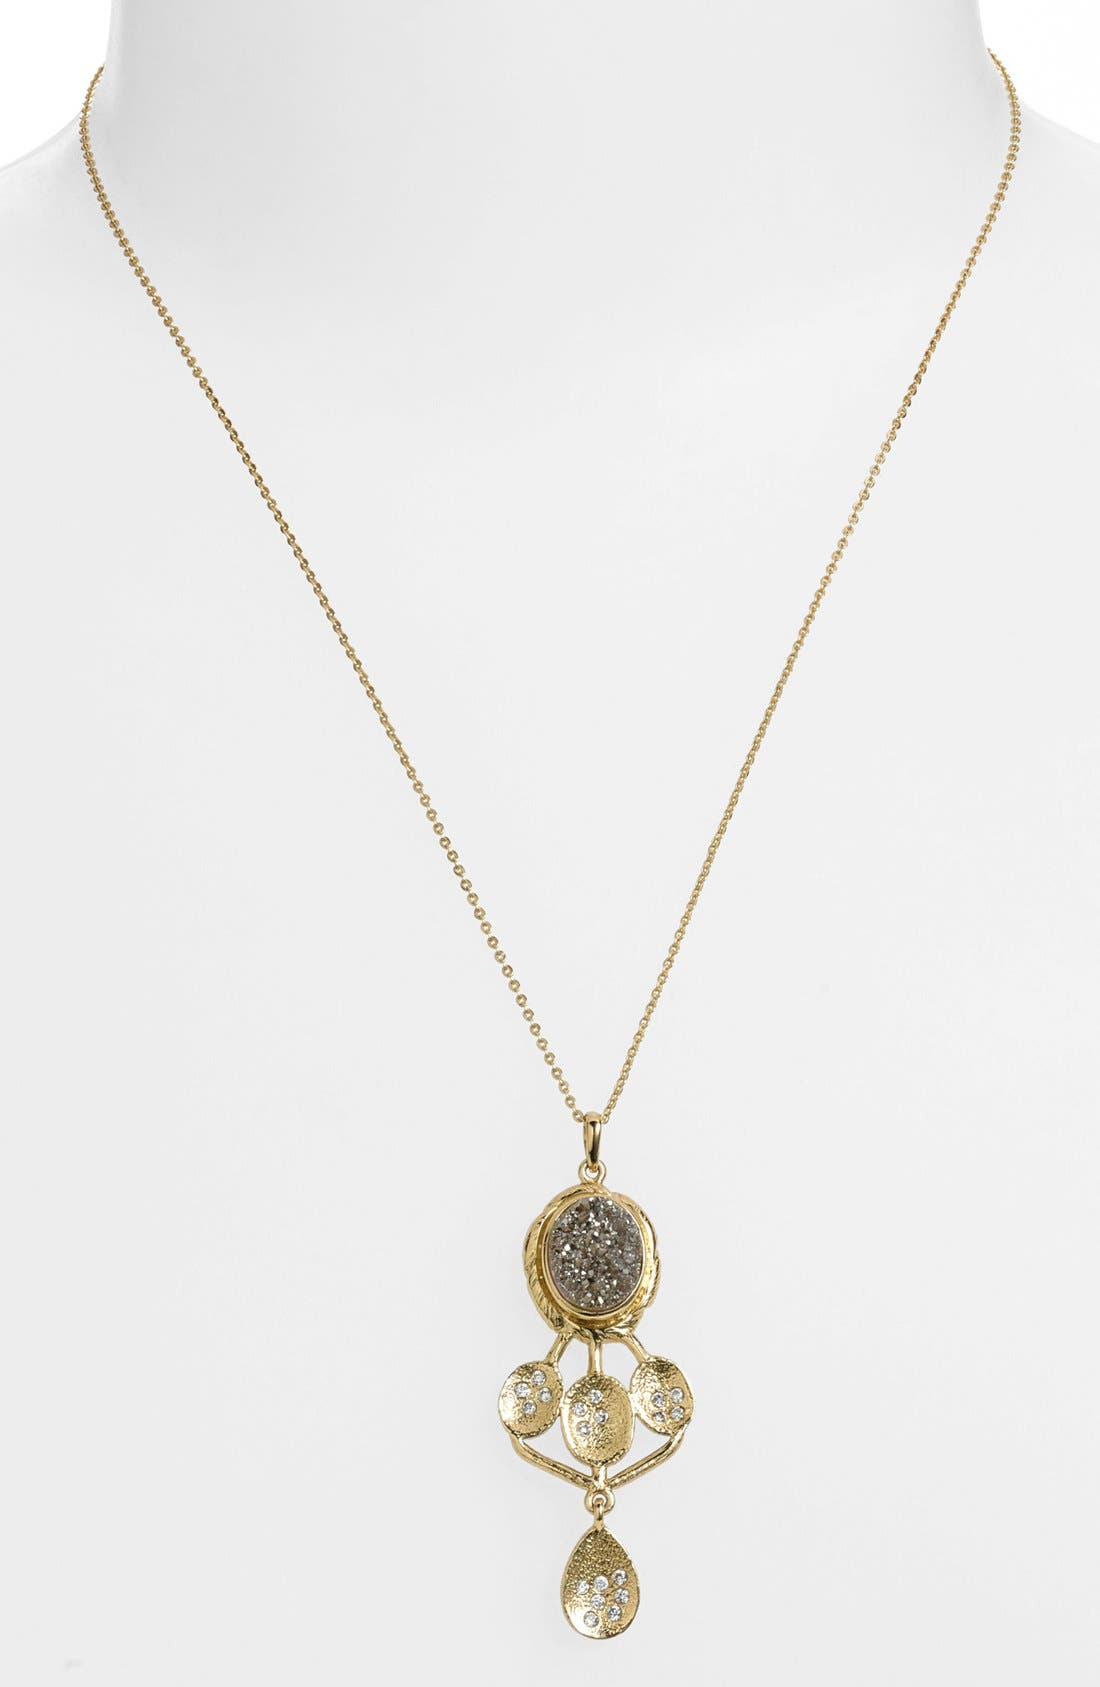 Alternate Image 1 Selected - Melinda Maria 'Julian' Pendant Necklace